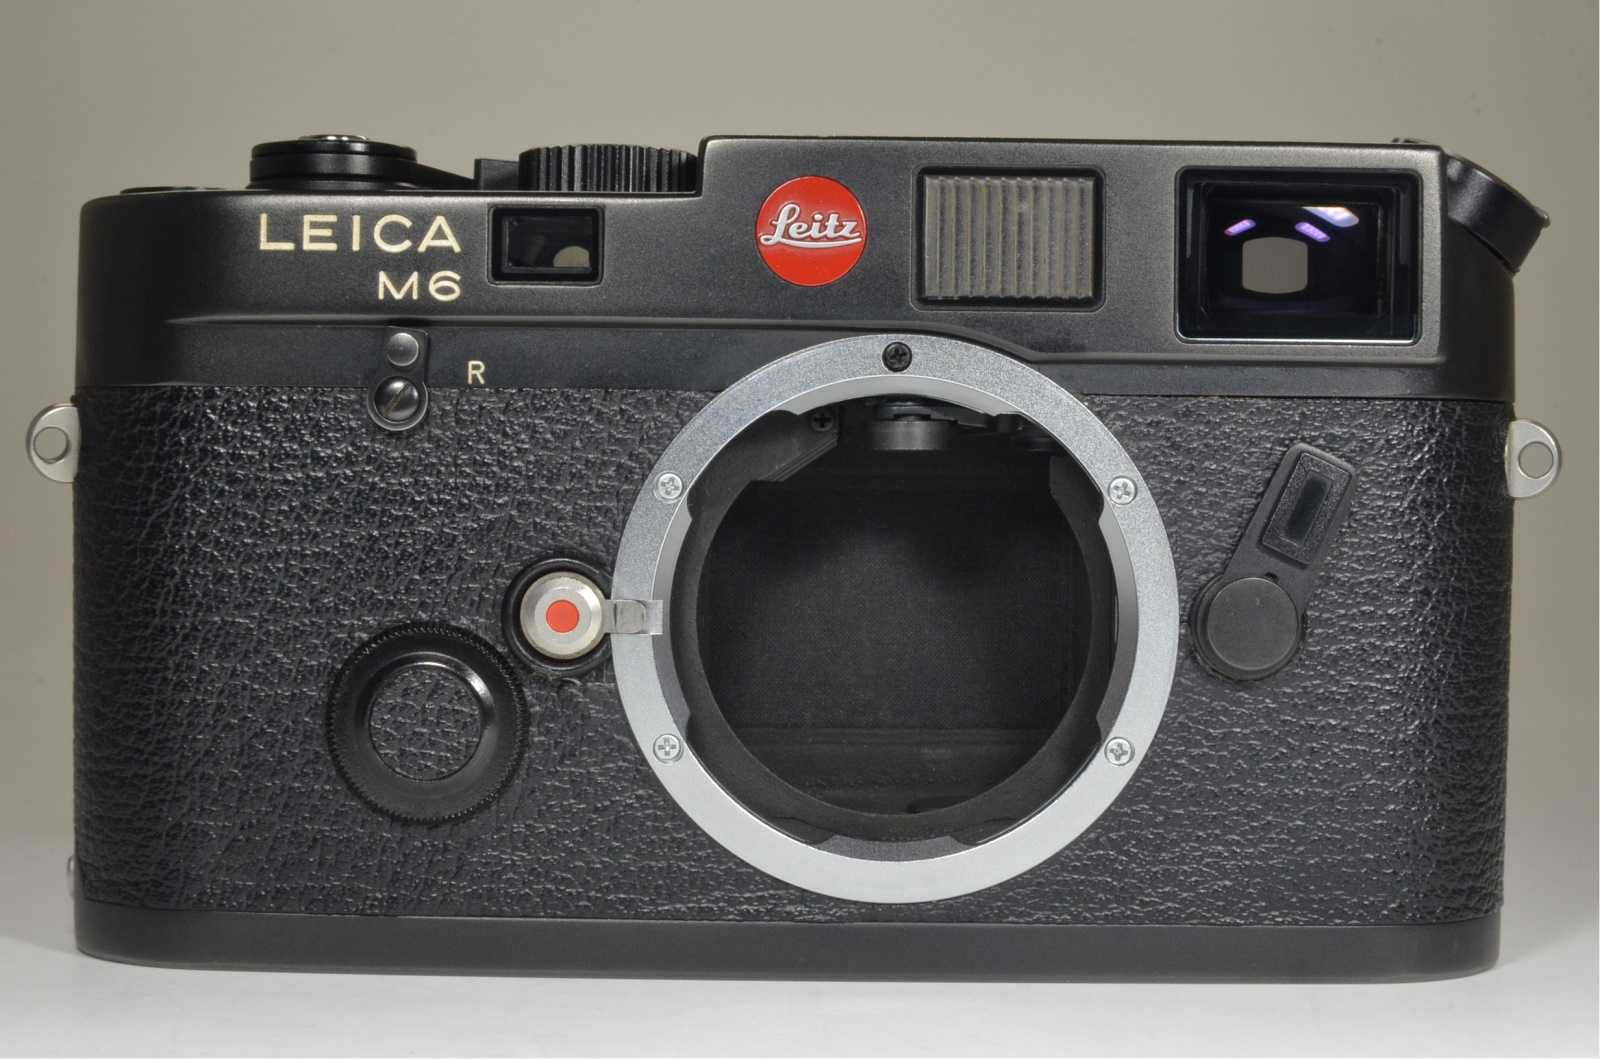 leica m6 0.72 black rangefinder no.1658937 year 1984 the camera cla'd recently